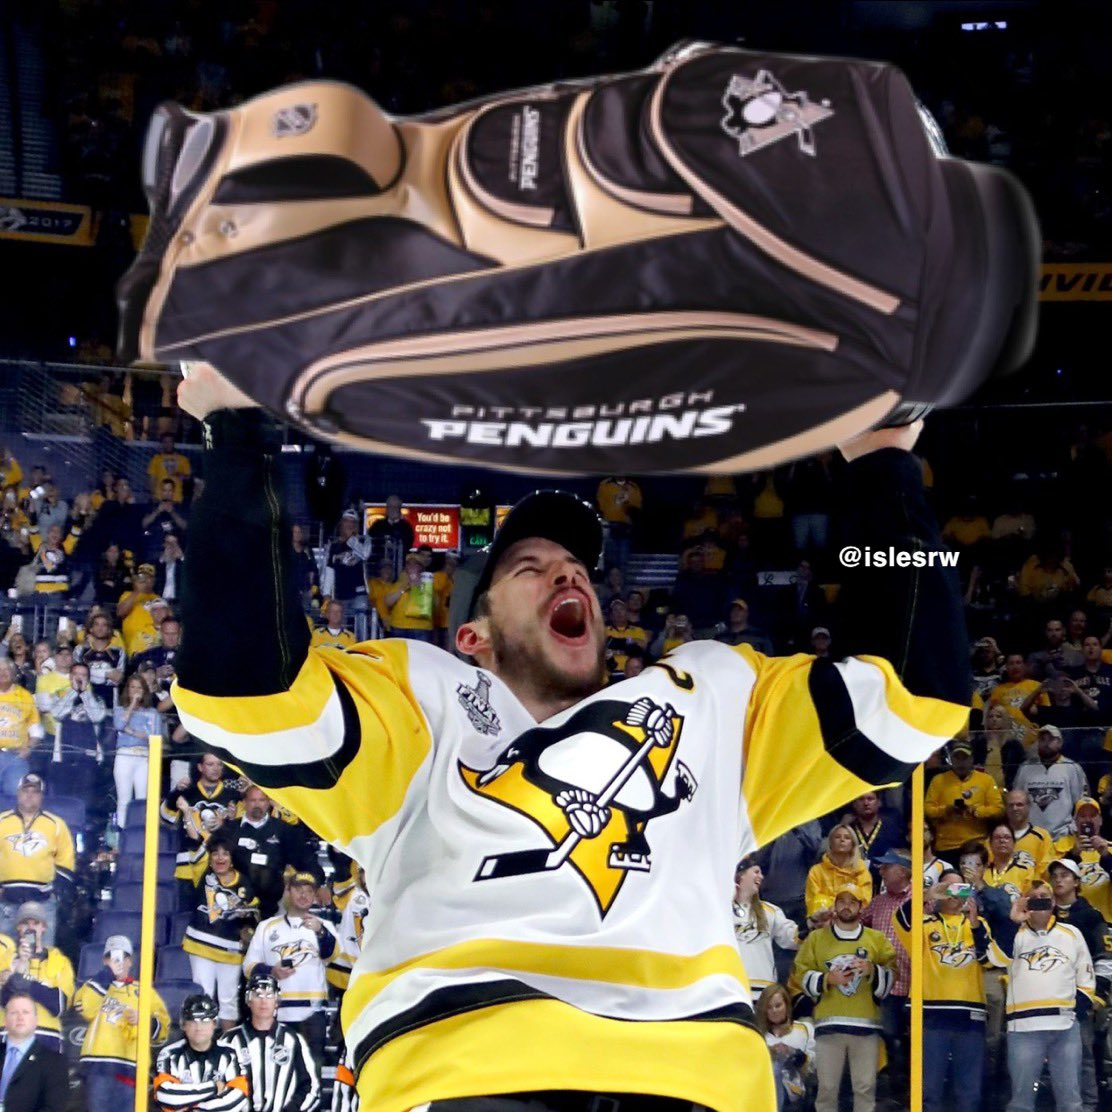 12 More - Isles Road Warrior's photo on #LetsGoPens